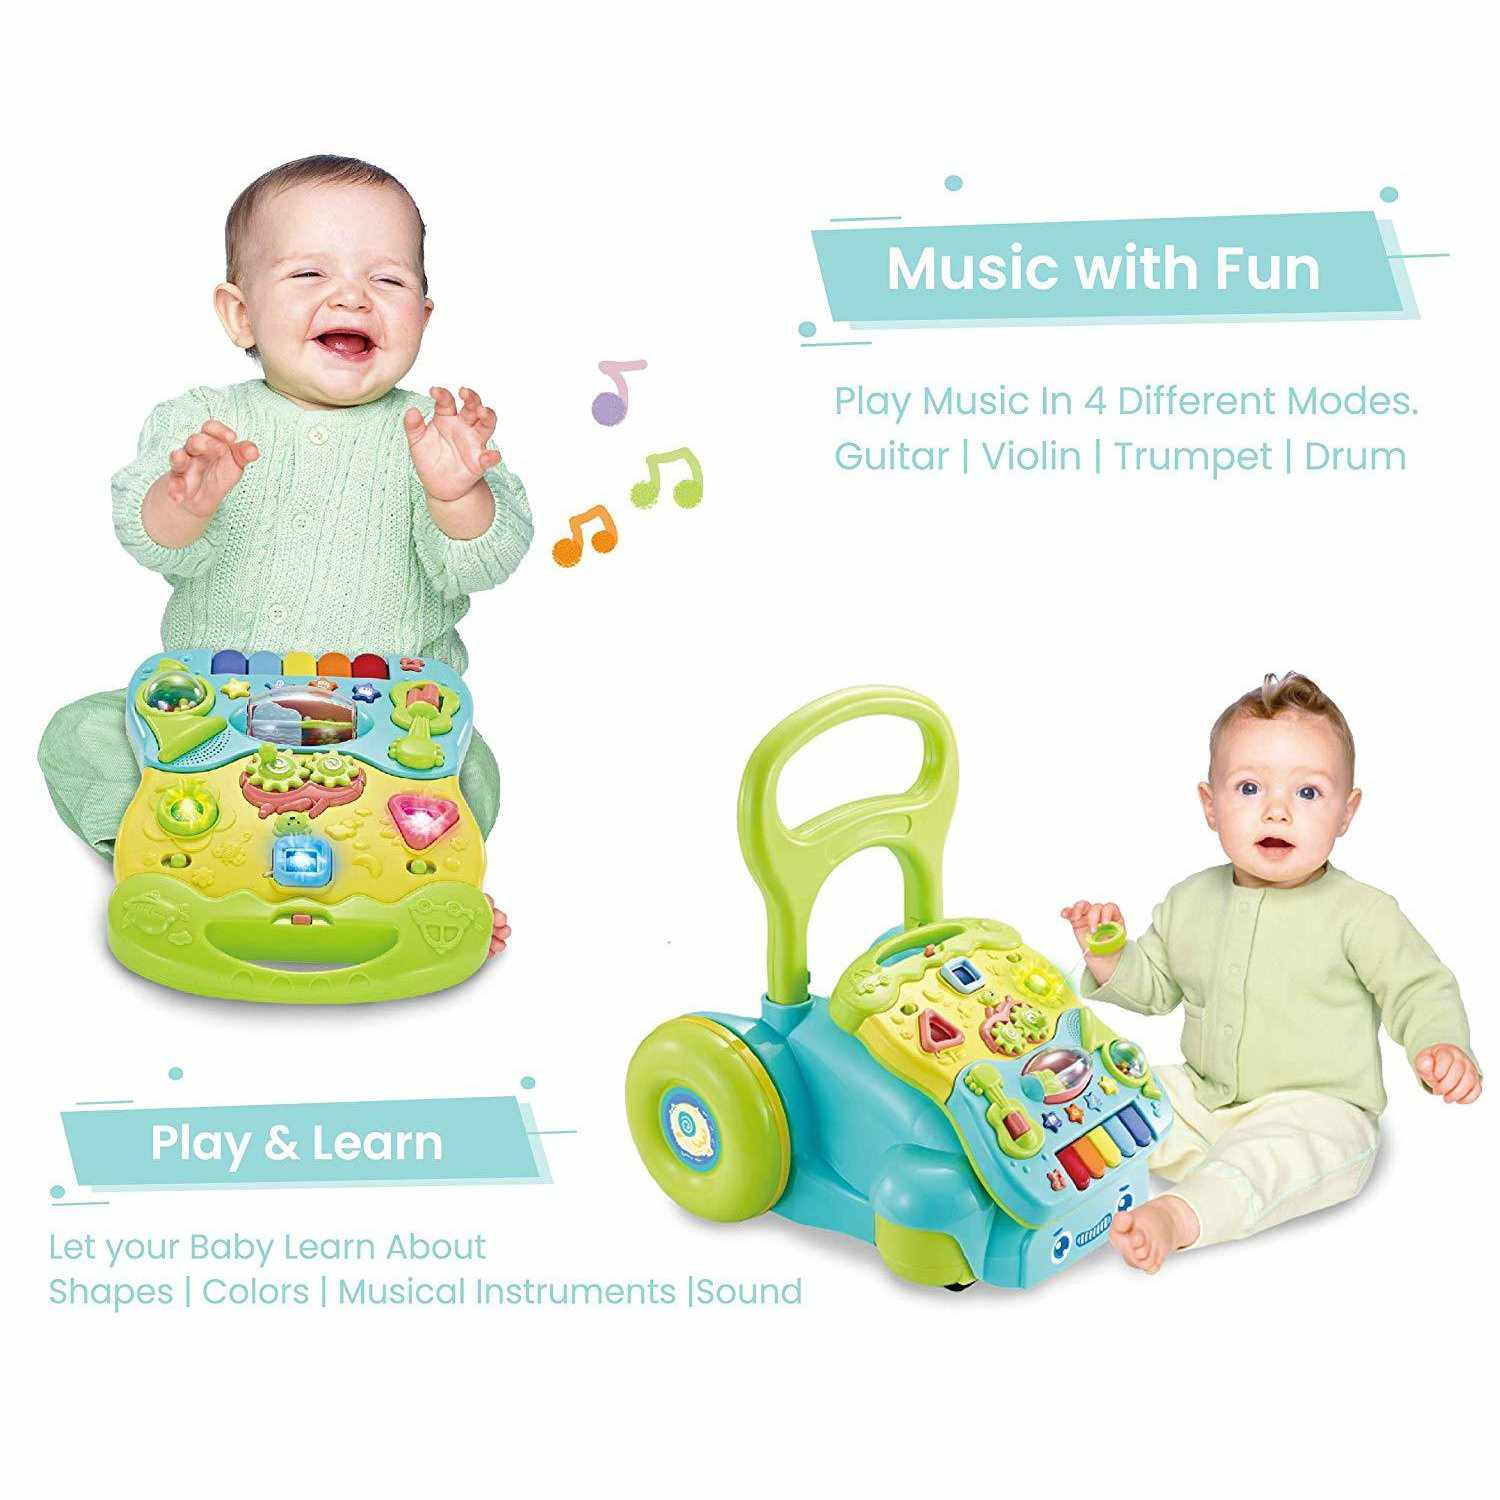 Orapple Toys  5 in 1 Learning Push Baby Walker for Kids